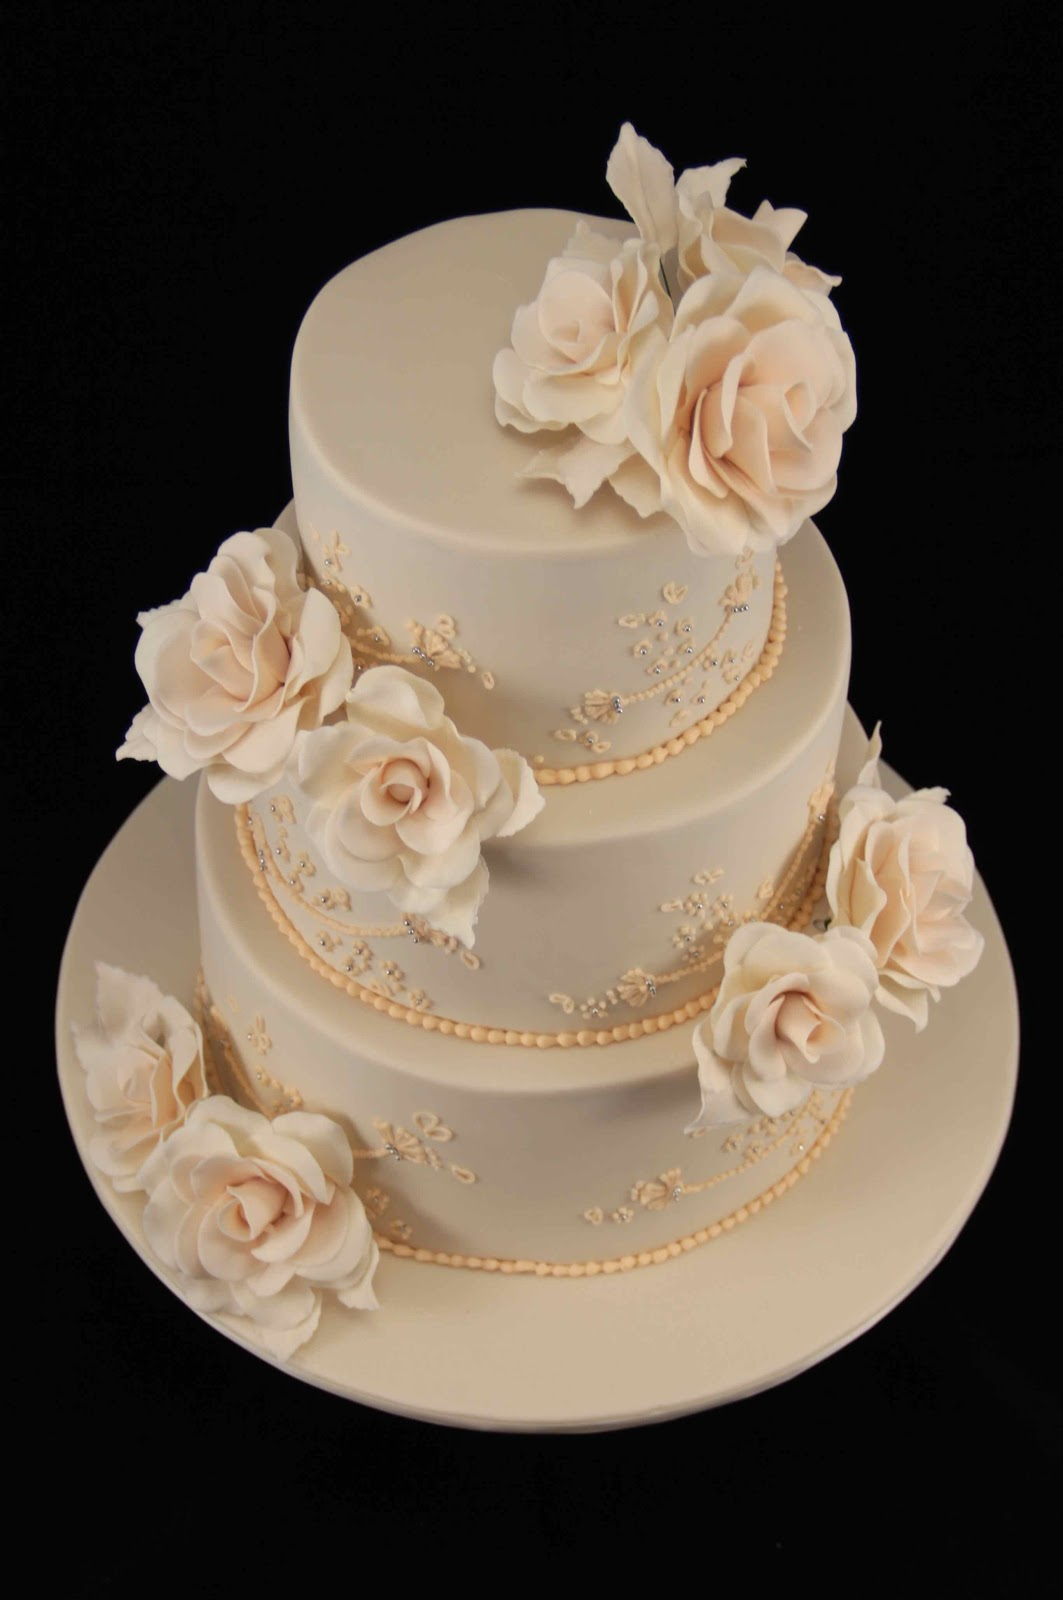 Cake Images Rose : Bakerz Dad: Rose Wedding Cake